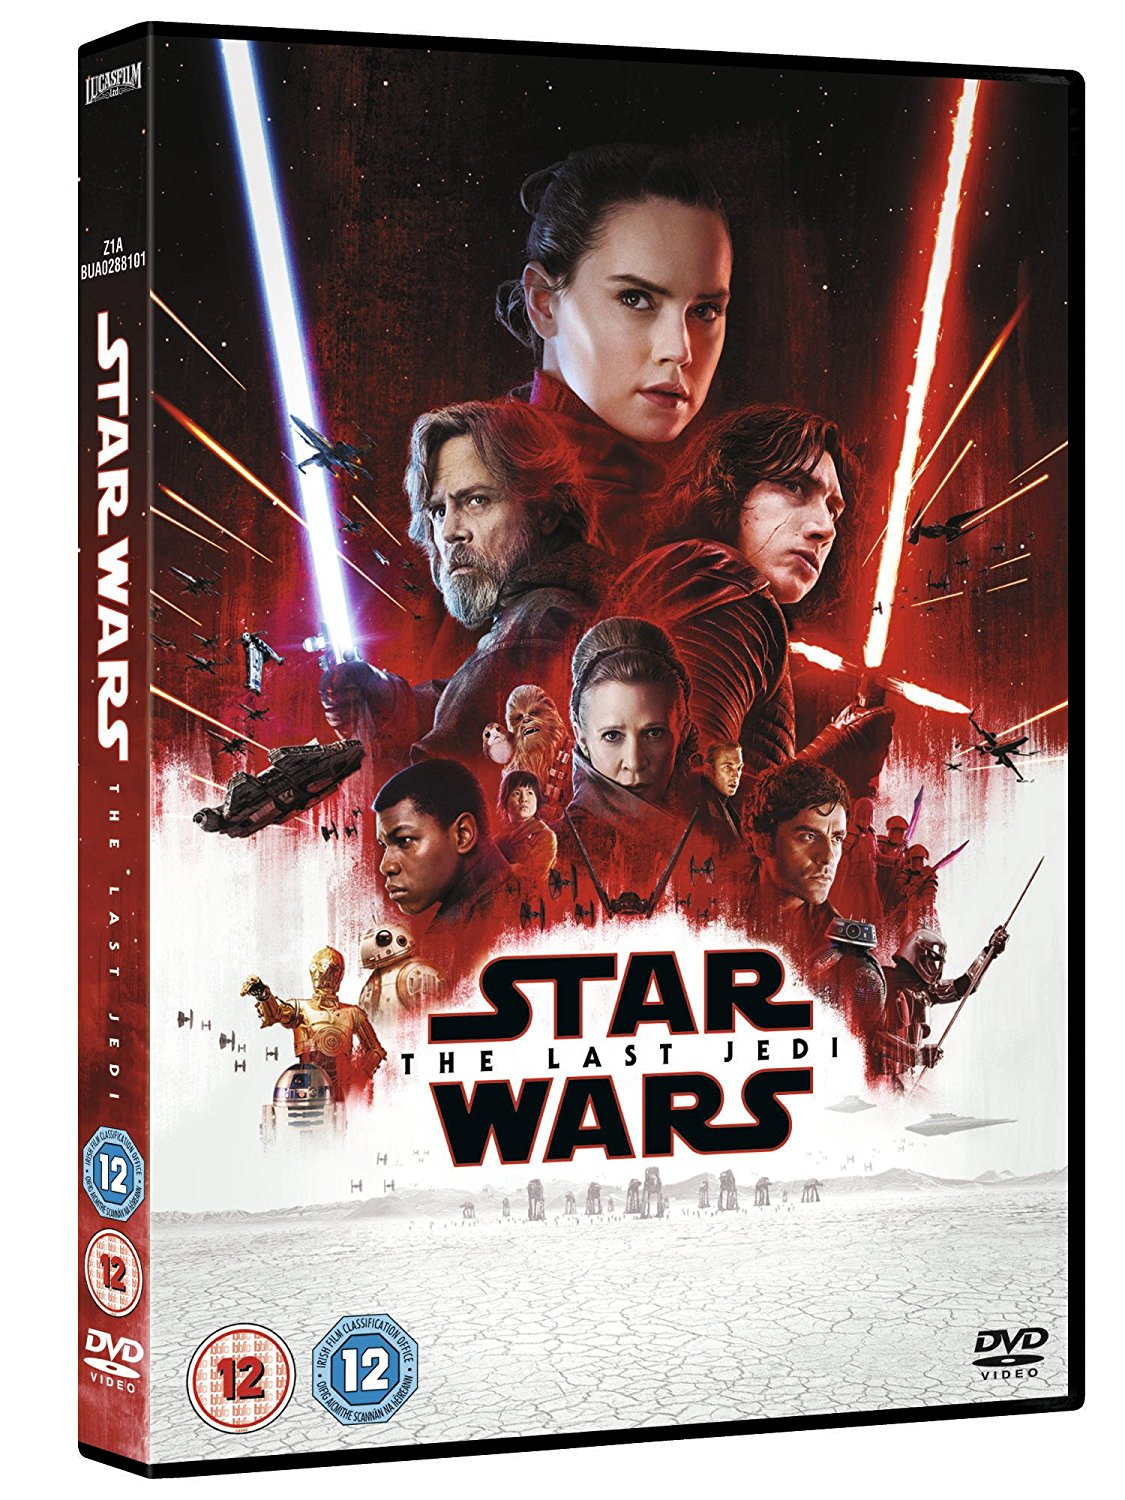 Star Wars: The Last Jedi Blu-Ray Review